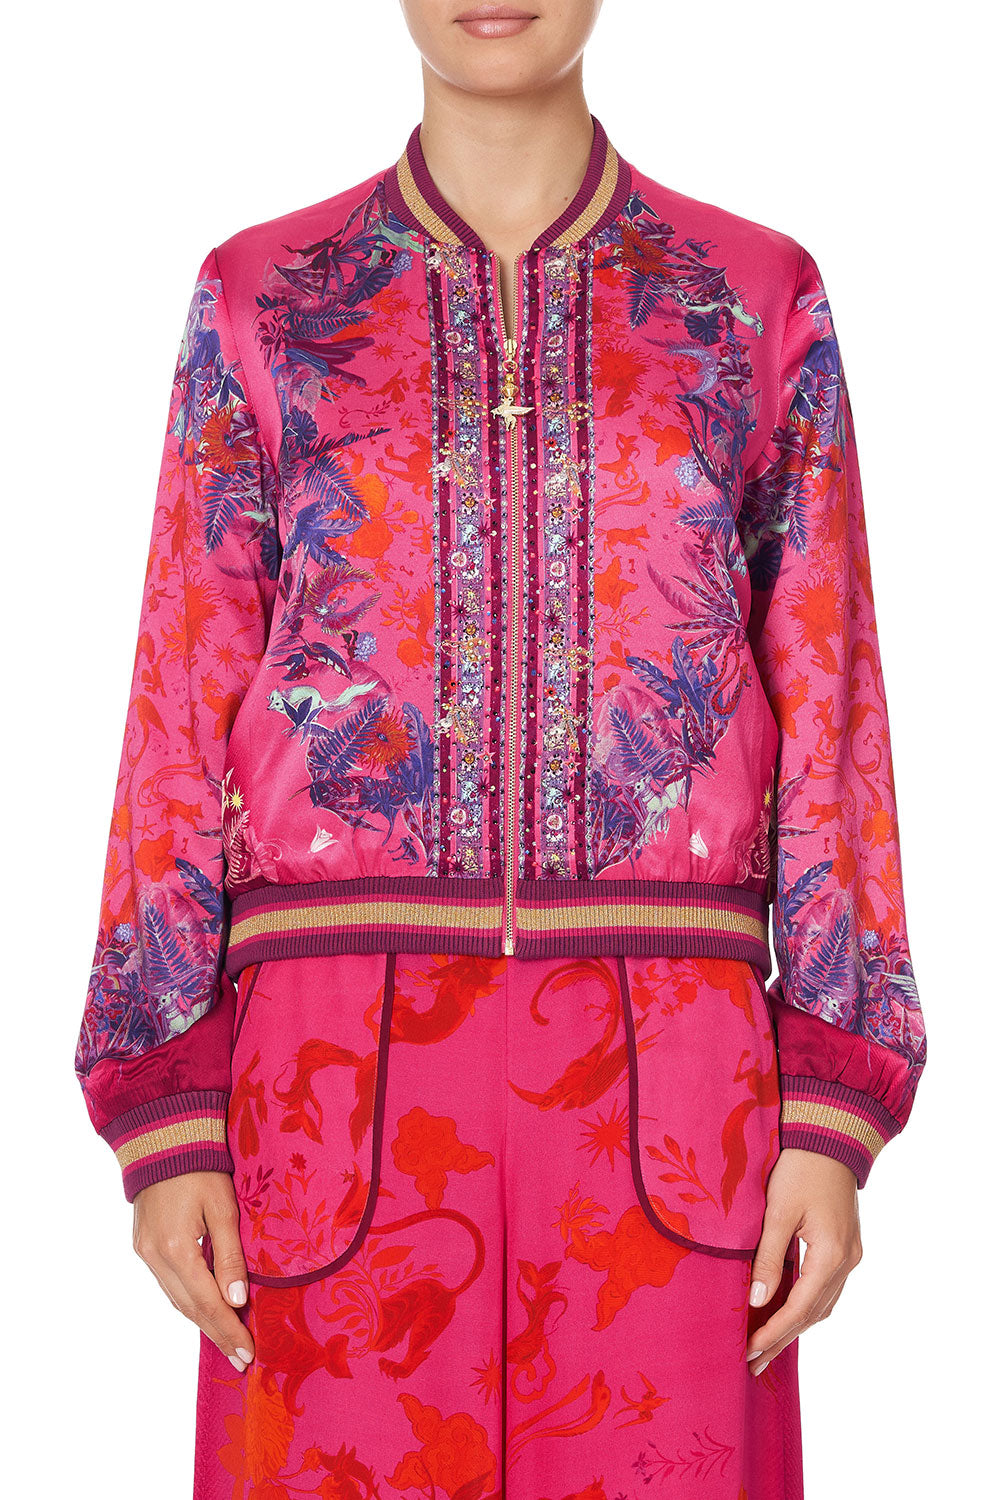 BOMBER JACKET TROPIC OF NEON